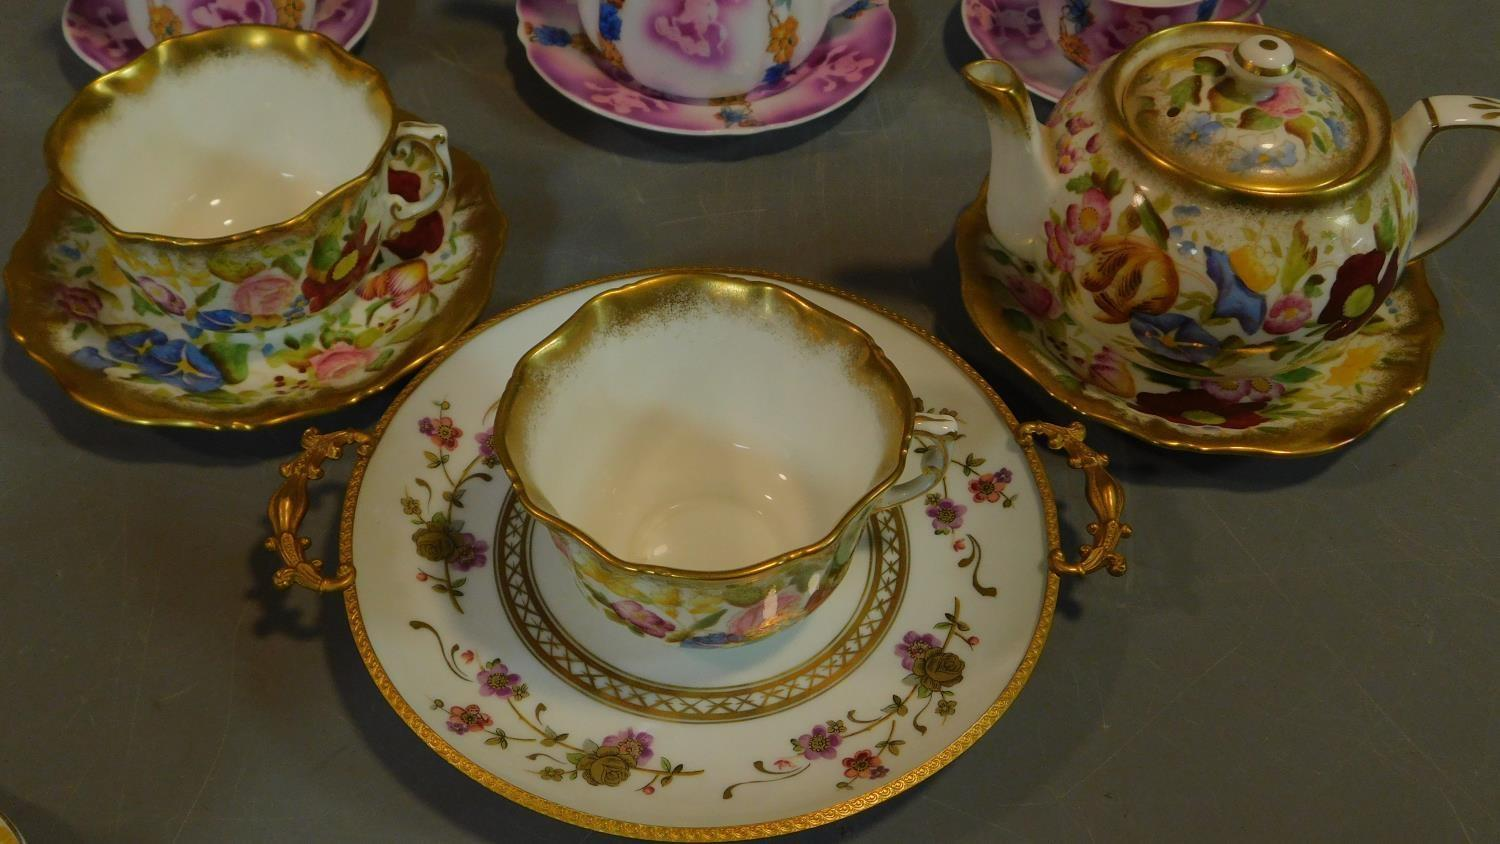 A miscellaneous collection of Victorian and later porcelain, vase, cups, saucers etc. - Image 10 of 14